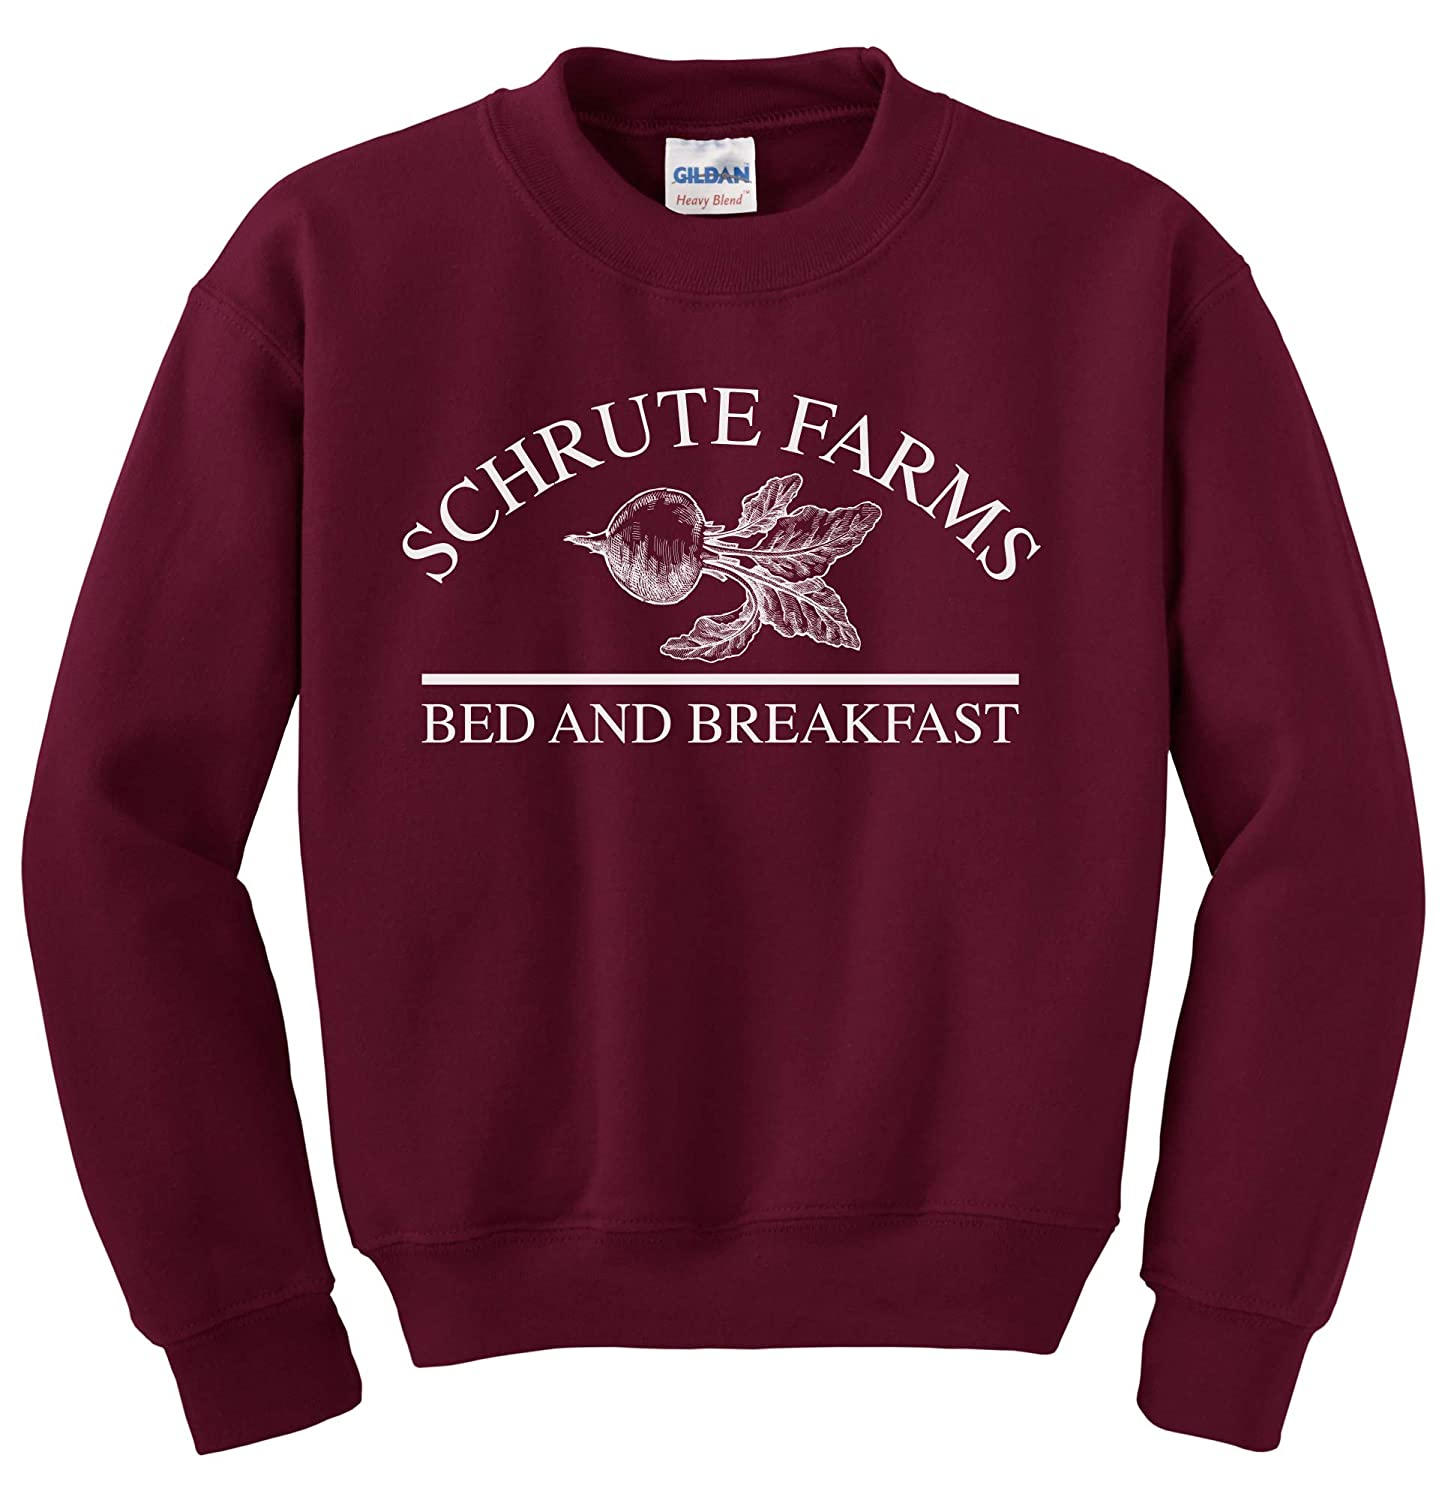 Asher's Apparel Schrute Farms Beets Bed and Breakfast Sweatshirt Sweater Pullover - Unisex